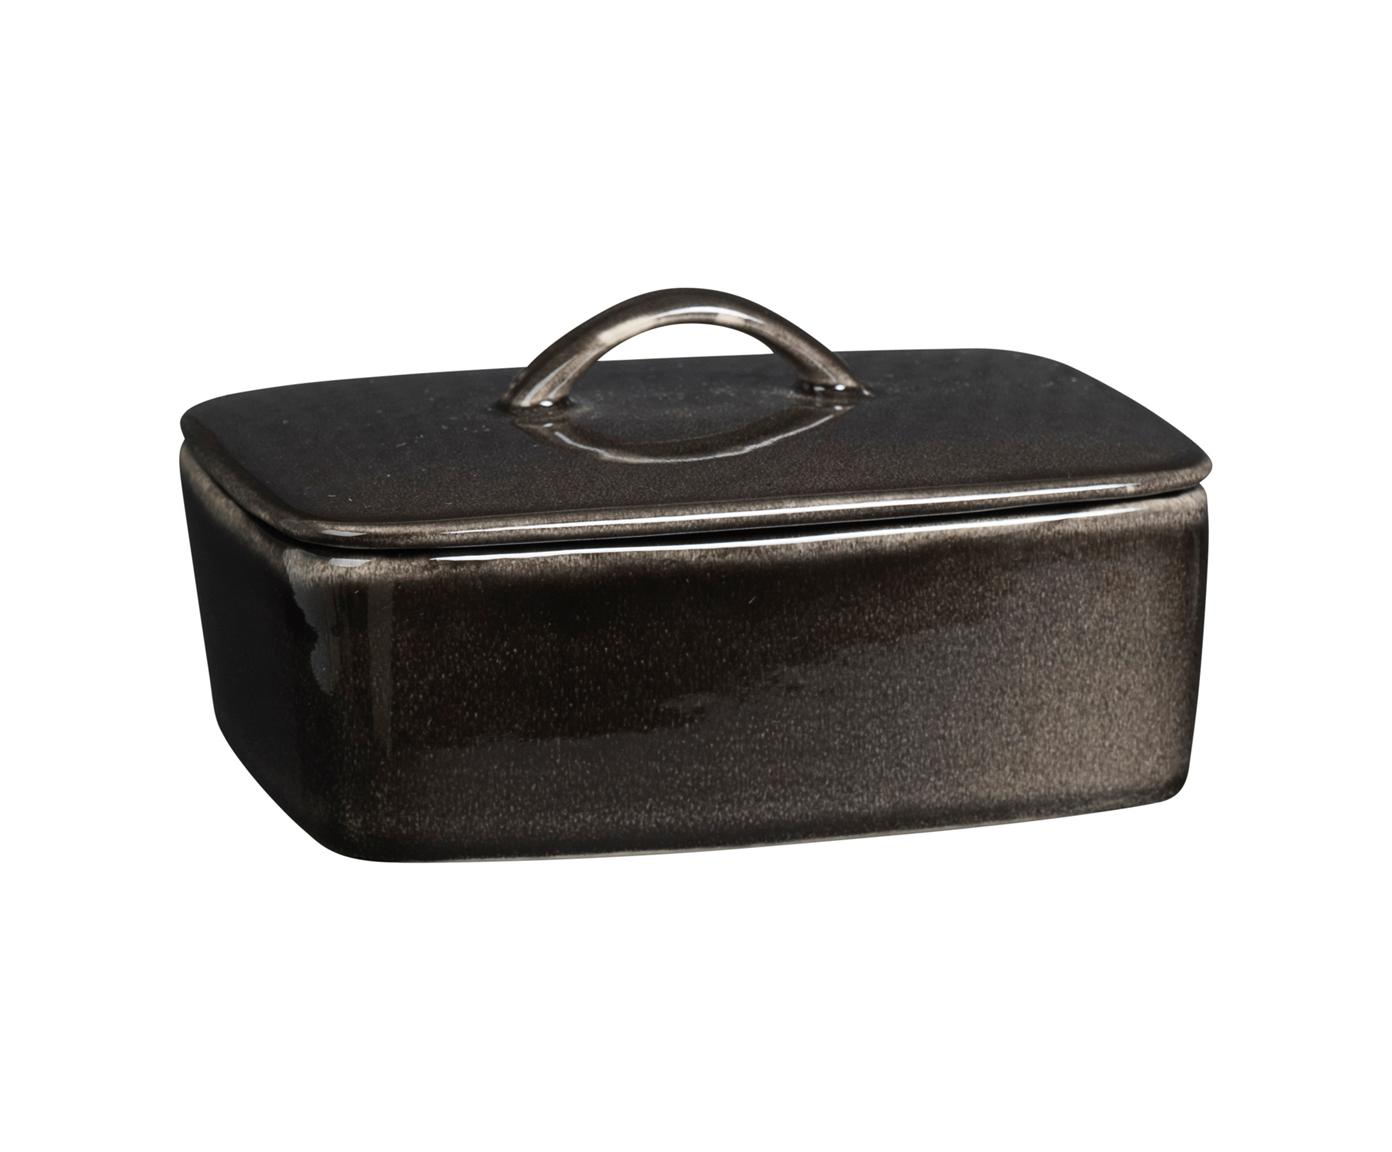 Burriera in terracotta fatta a mano  Nordic Coal, Terracotta, Marrone scuro, Larg. 15 x Alt. 6 x Prof. 12 cm